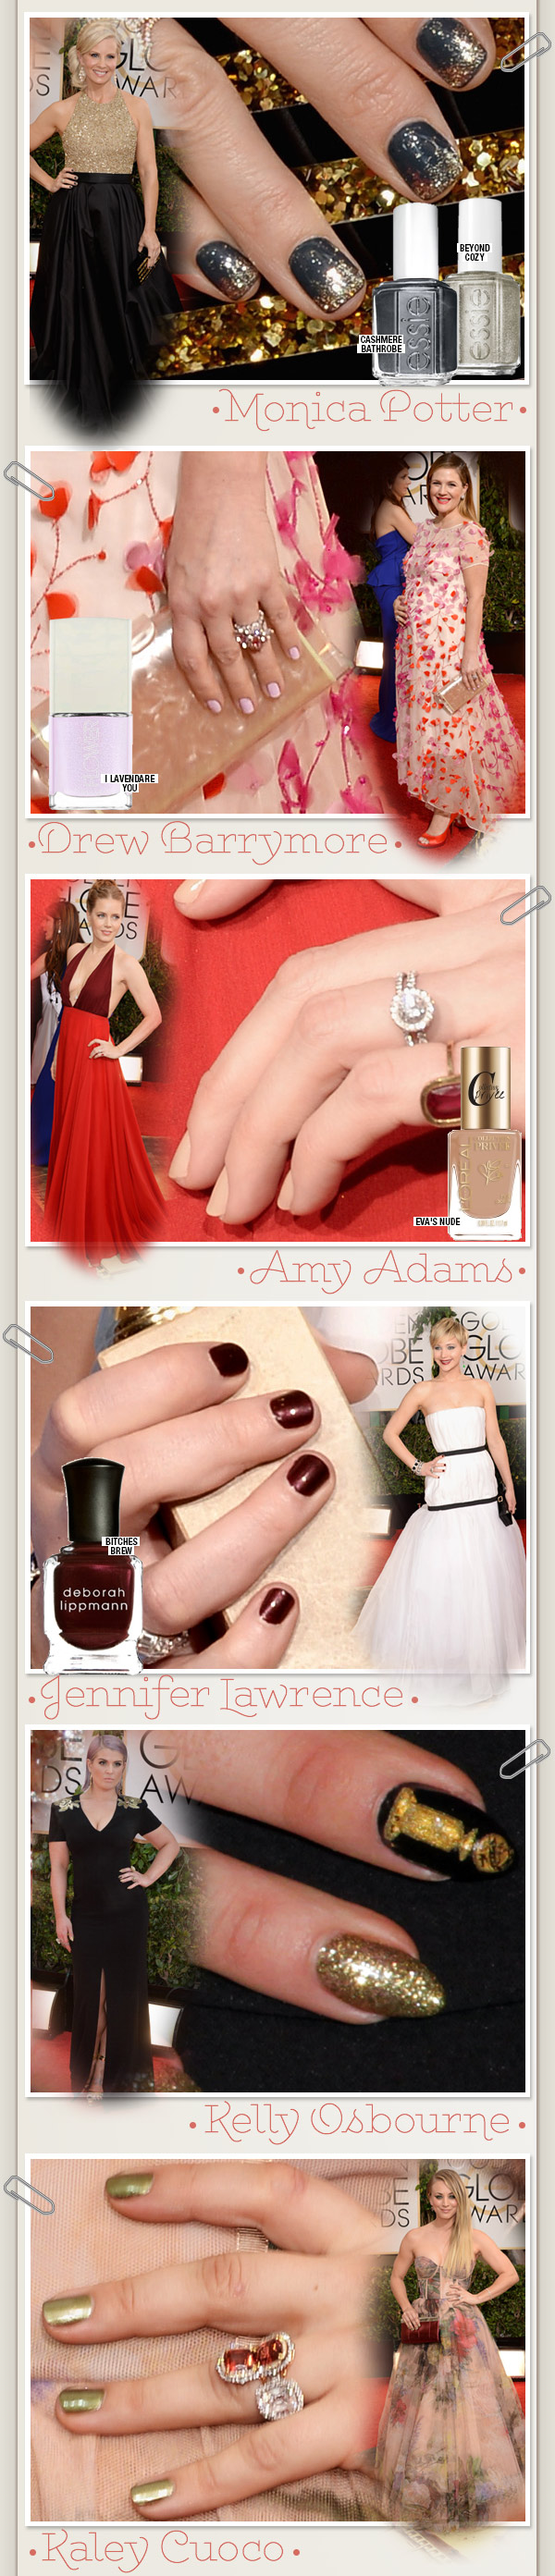 2-unhas-nails-manicure-golden-globe-2014